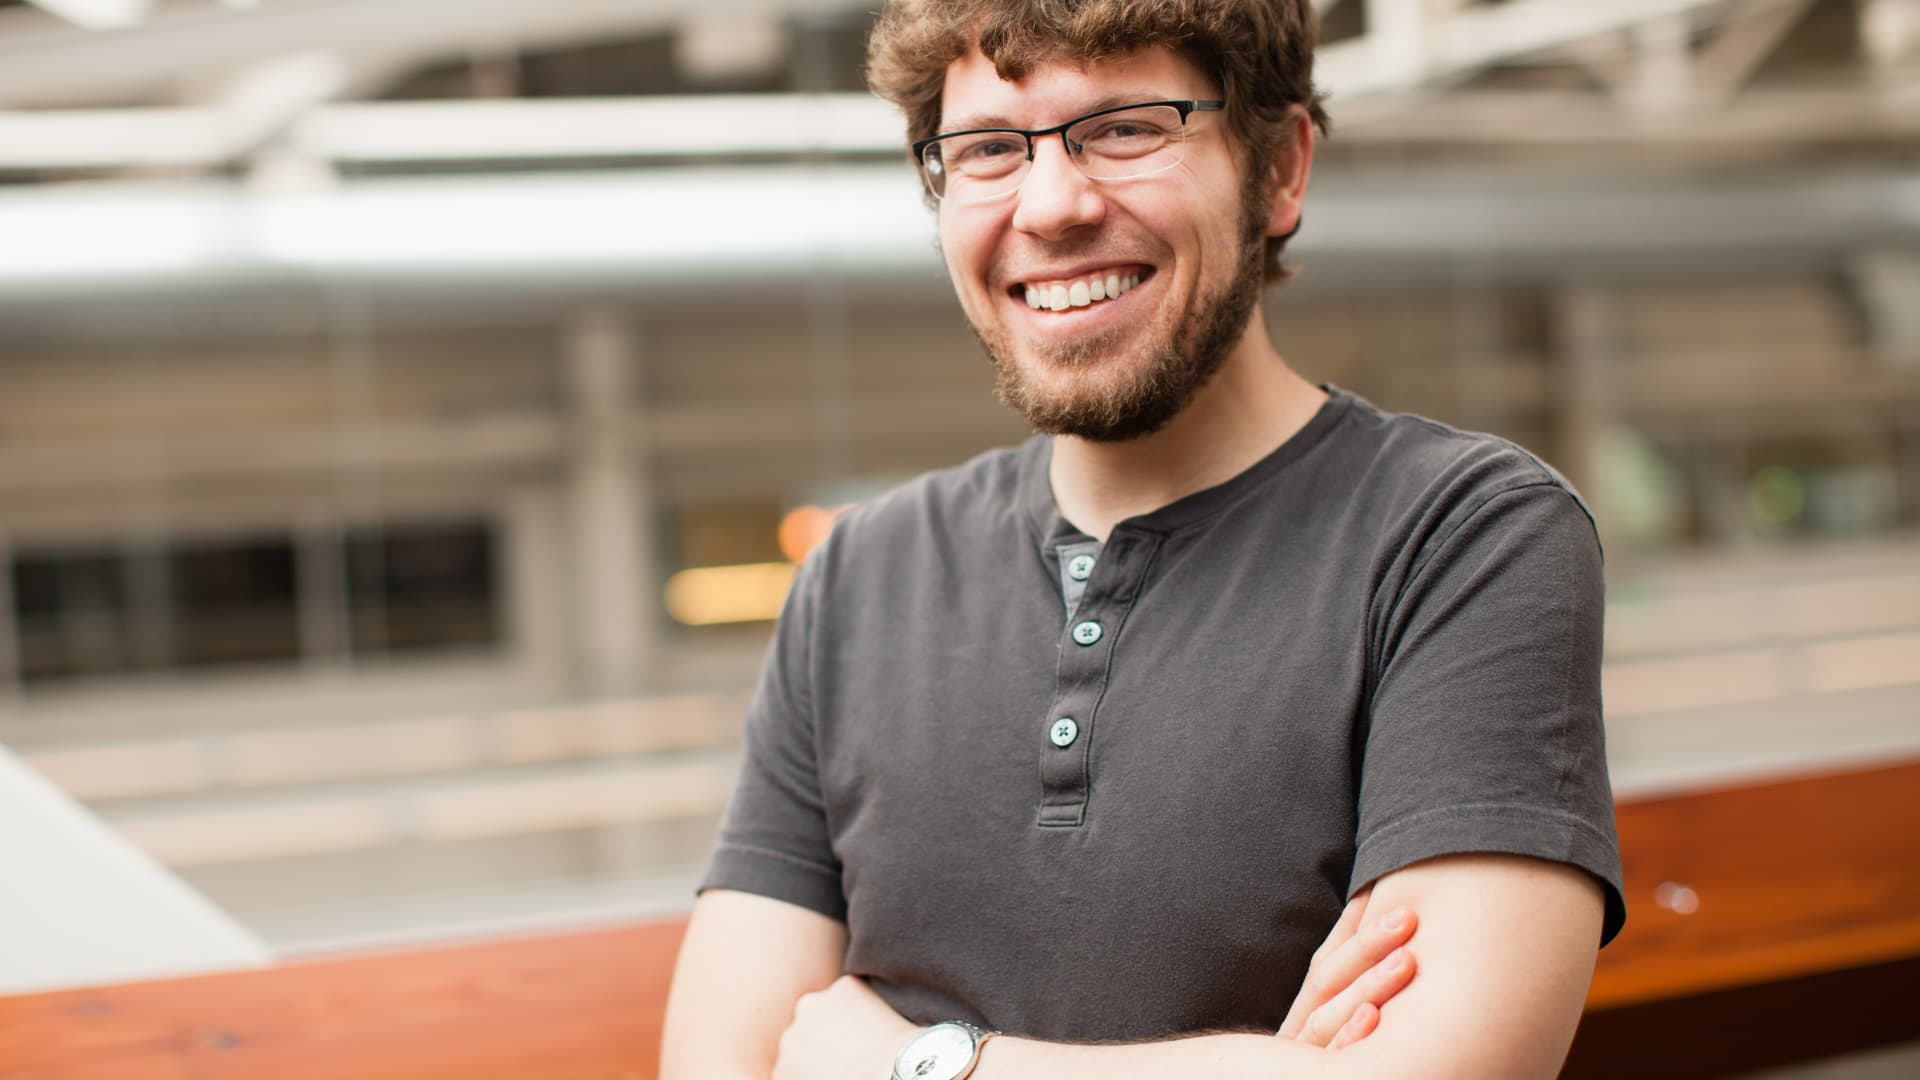 Jason Citron is the CEO of Discord, a chat app that has long been popular among gamers but is beginning to expand to other audiences.